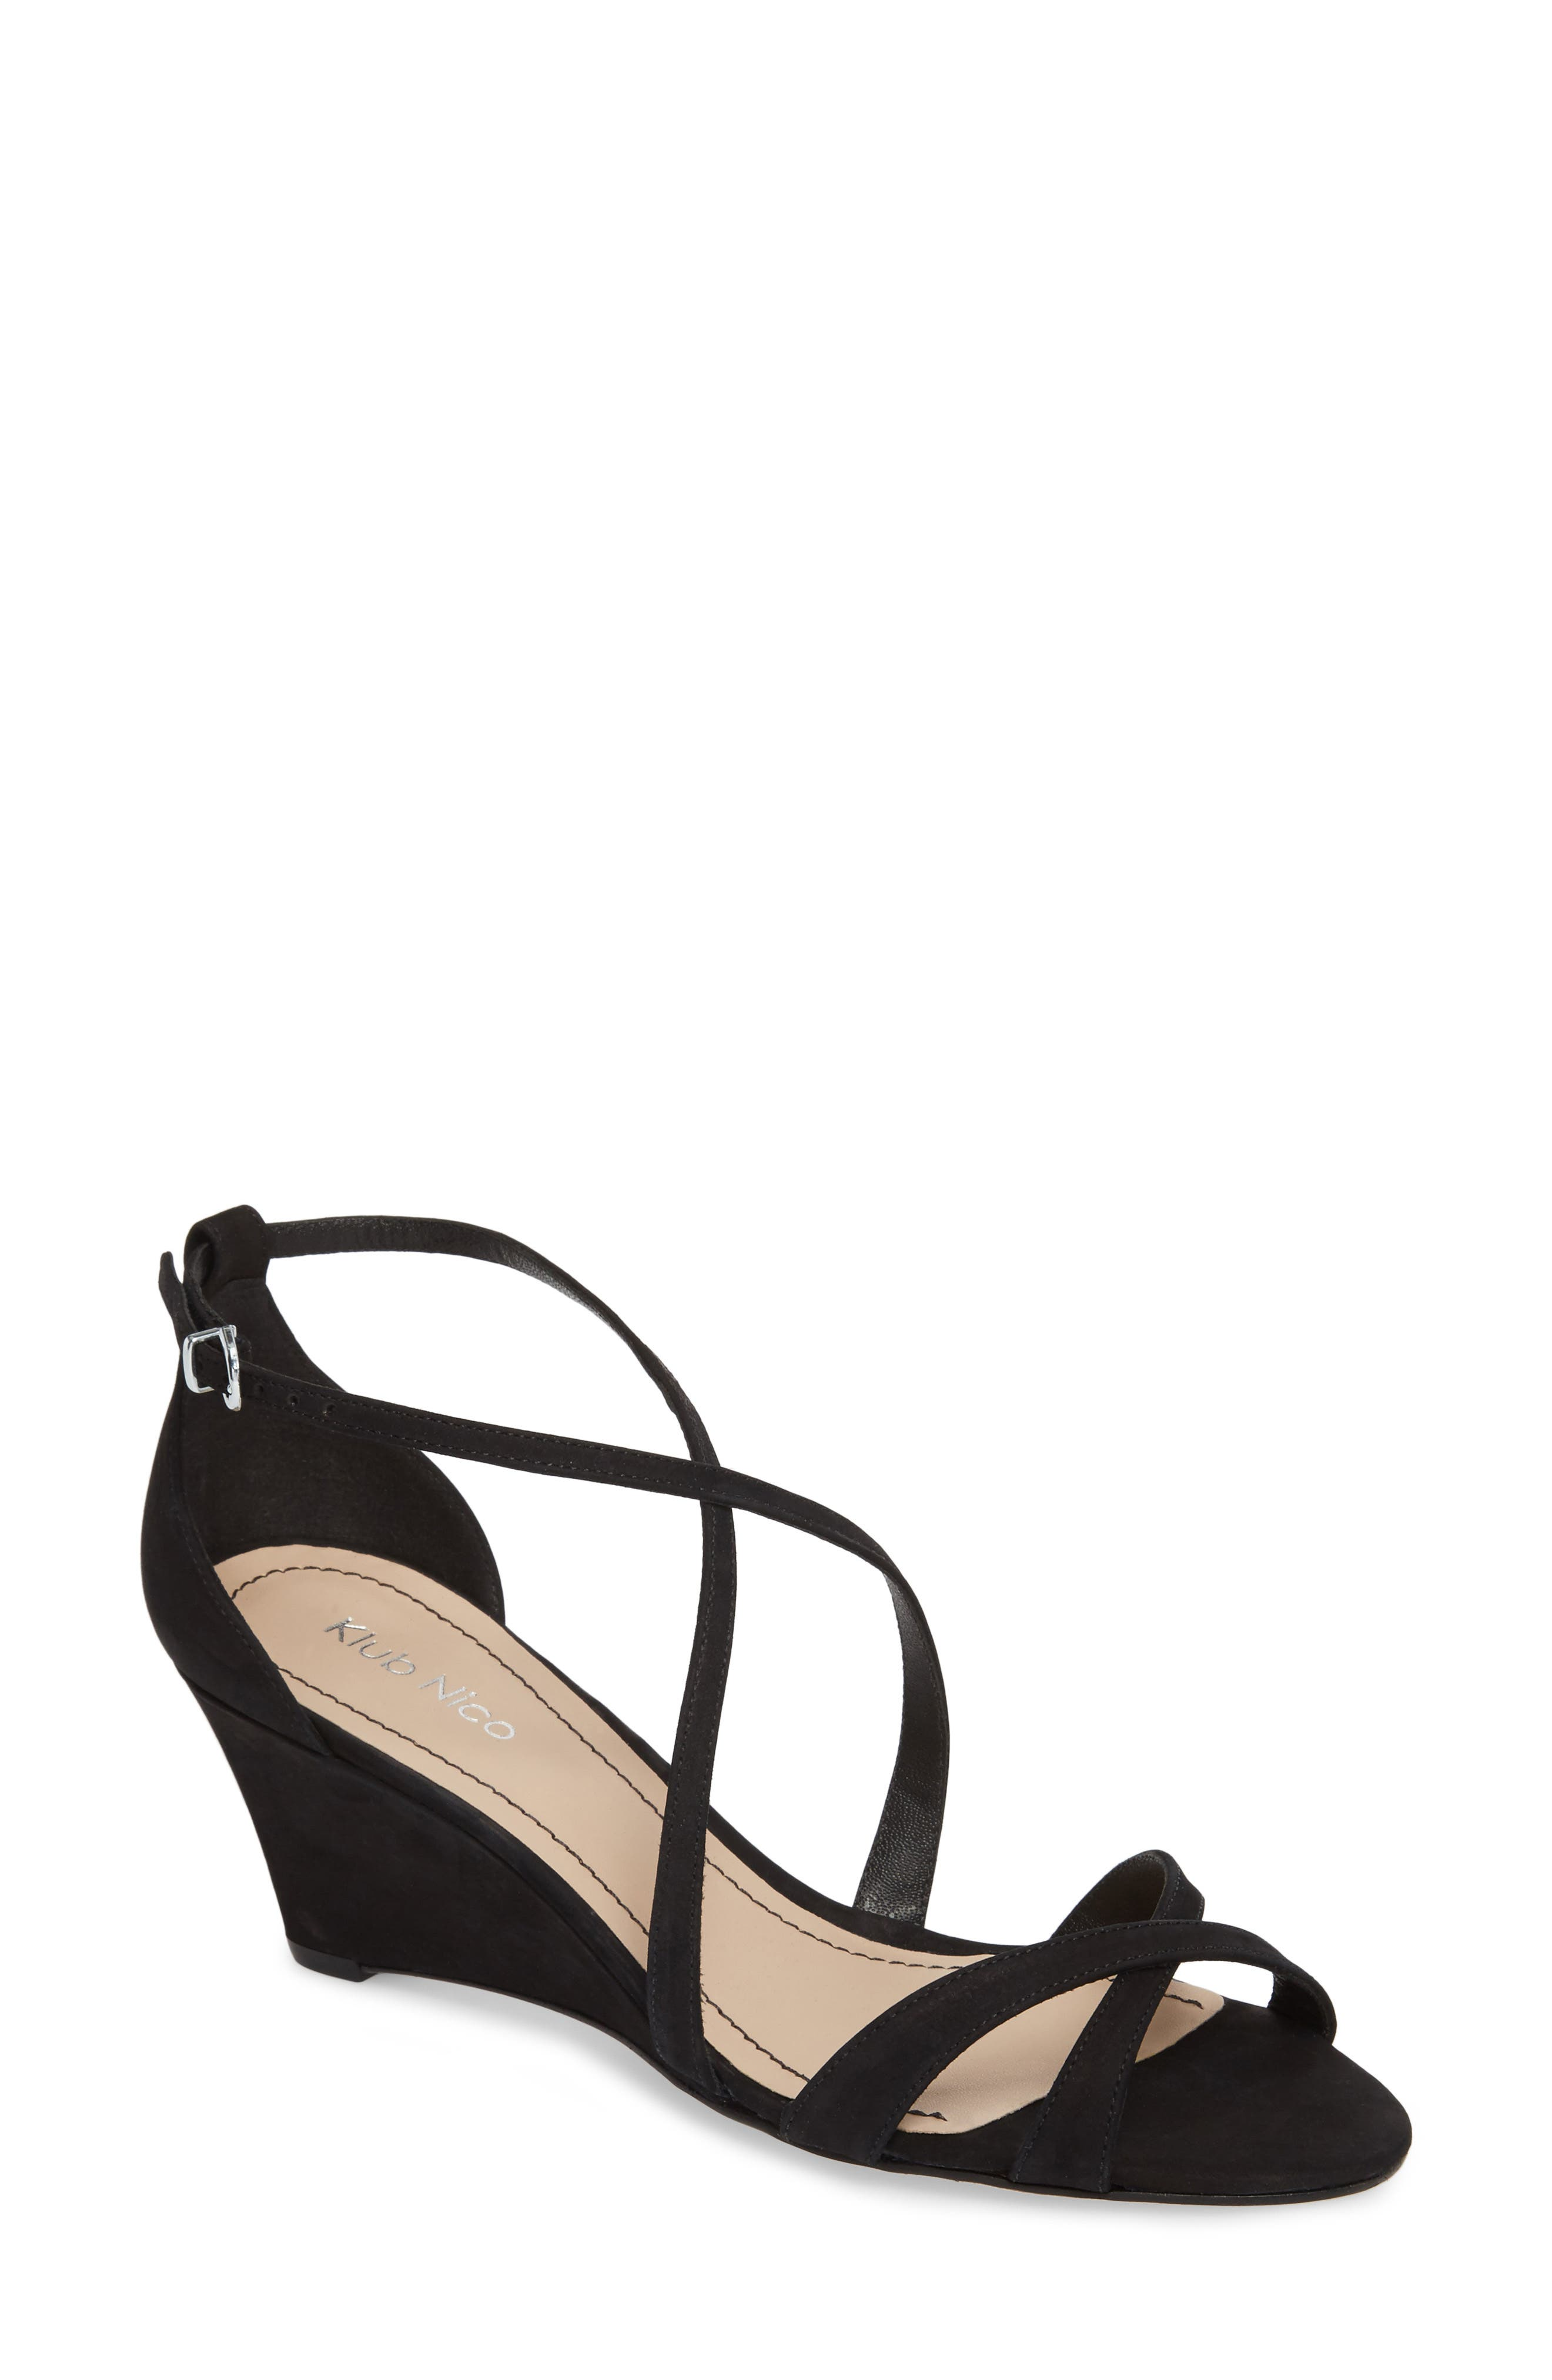 KLUB NICO,                             Kaissa Sandal,                             Main thumbnail 1, color,                             BLACK NUBUCK LEATHER